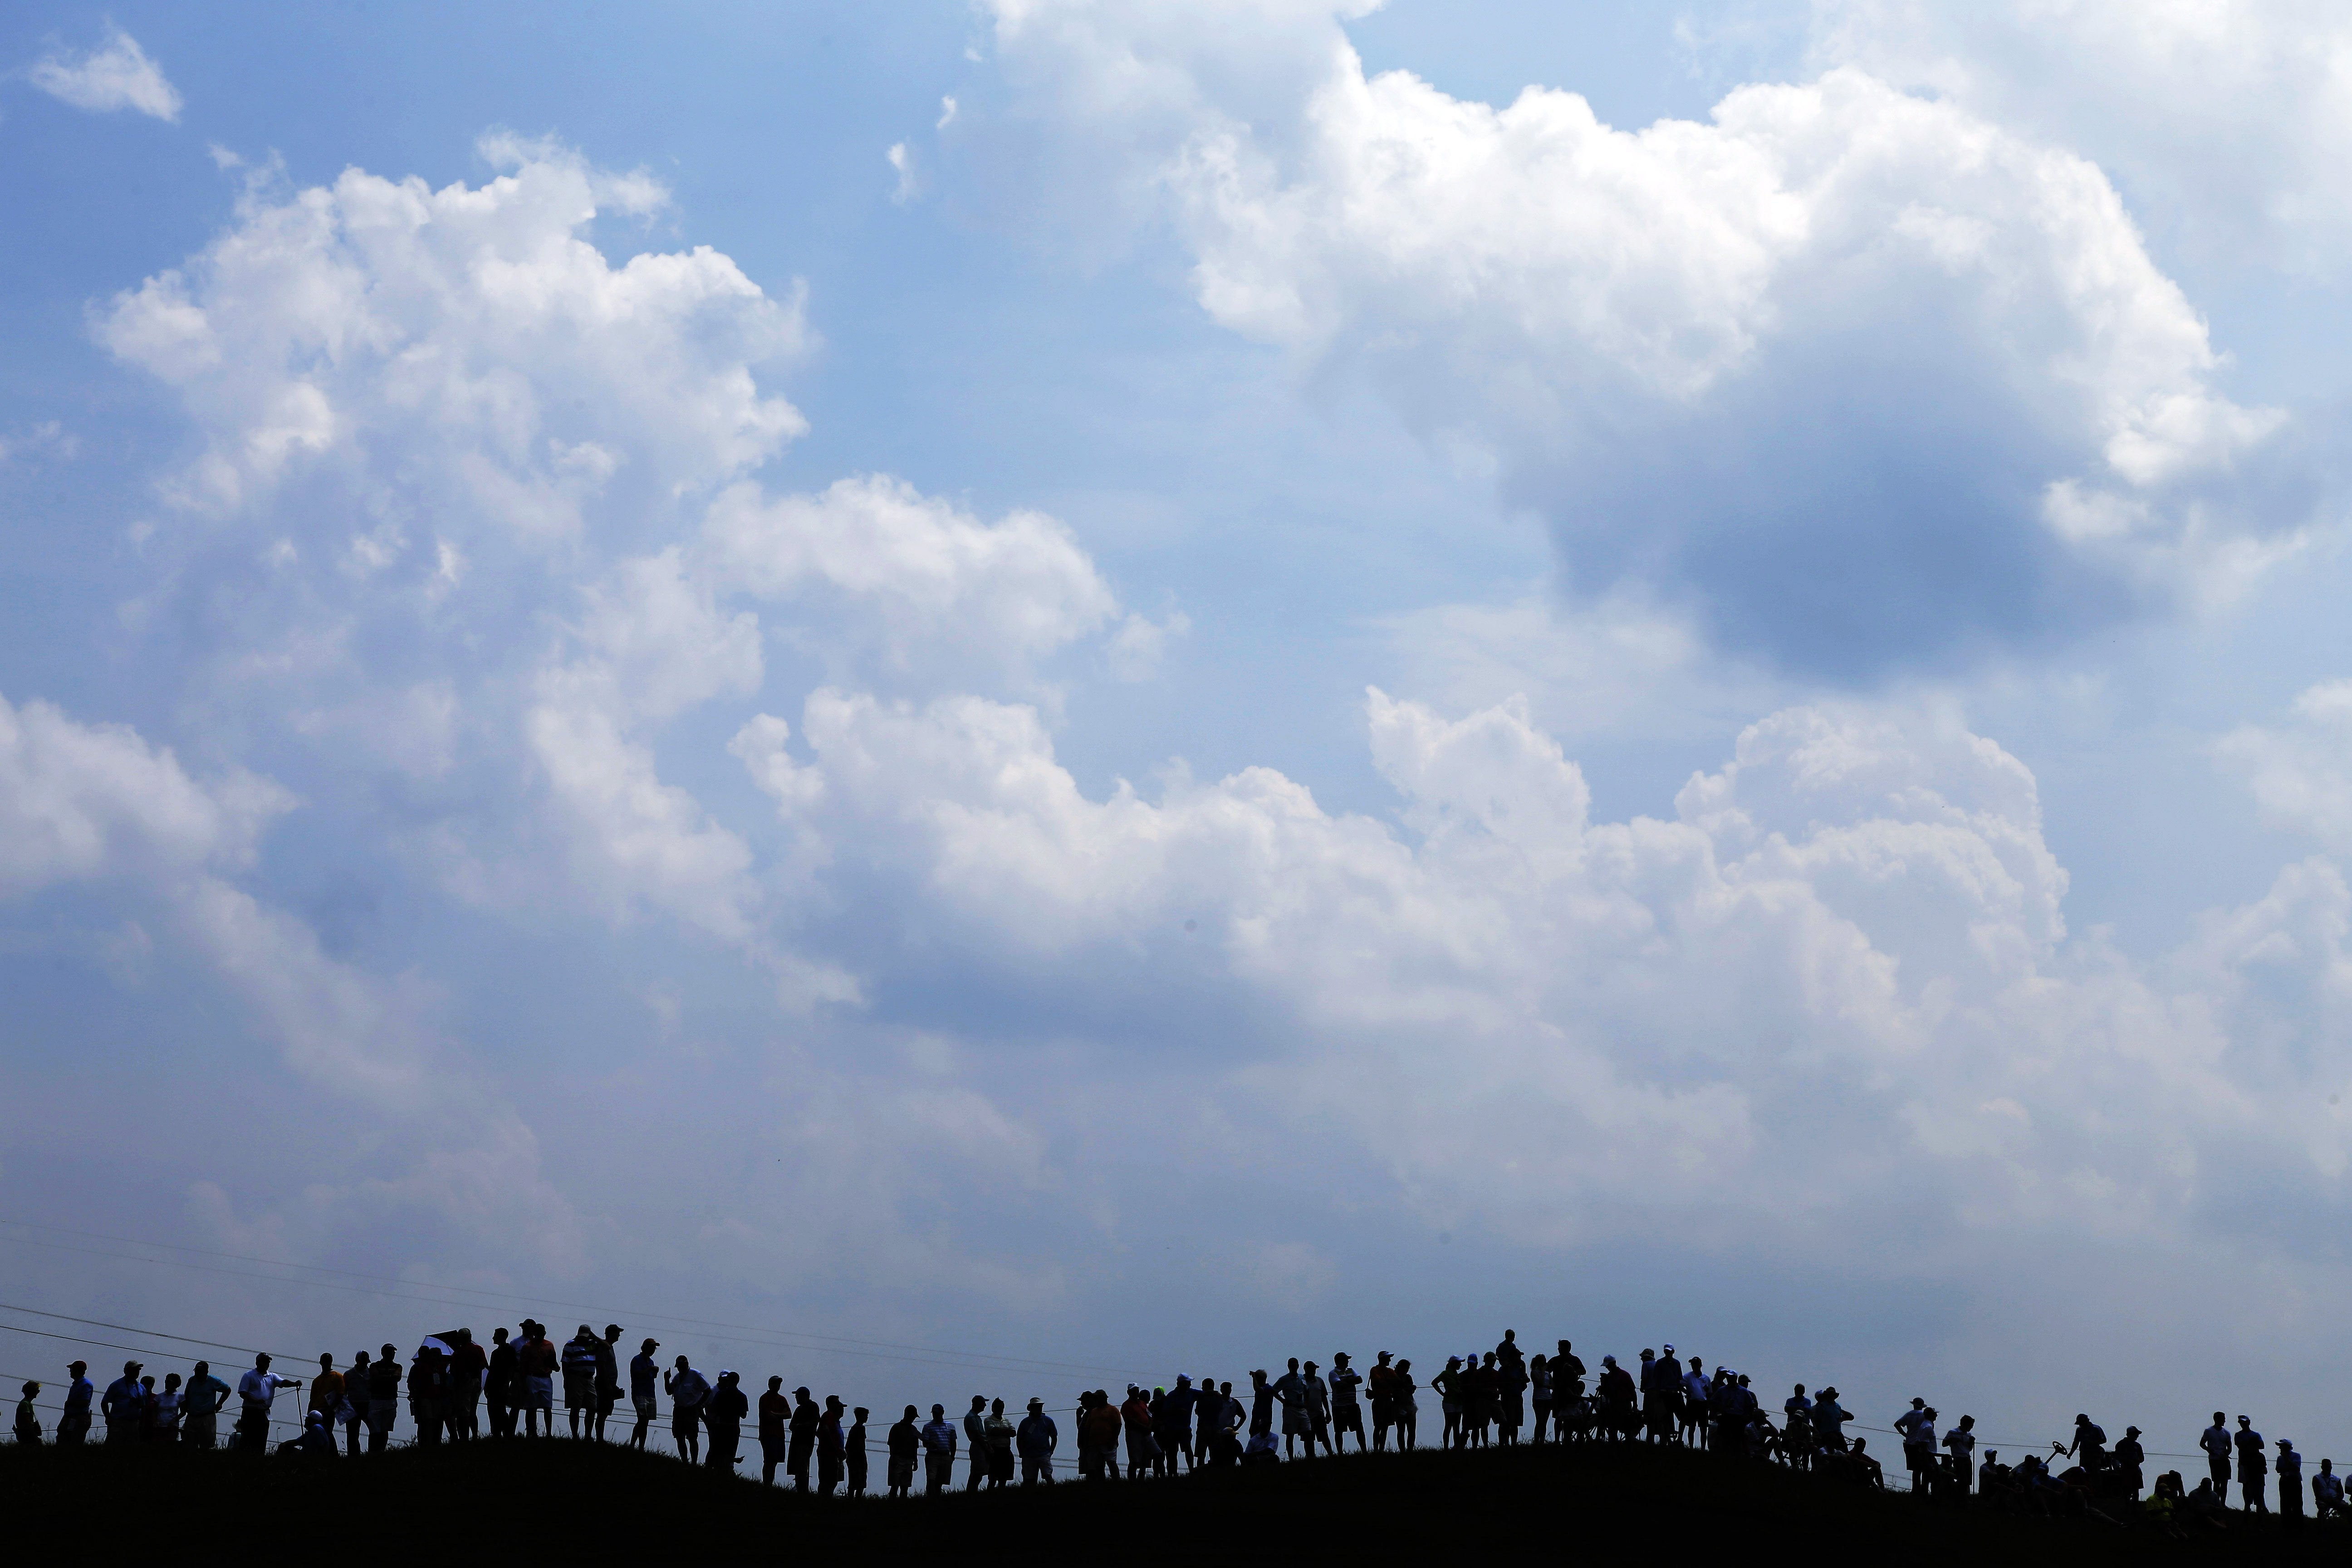 Aug. 6, 2014. Fans line the fourth fairway to watch Tiger Woods during a practice round for the PGA Championship golf tournament at Valhalla Golf Club in Louisville, Ky.